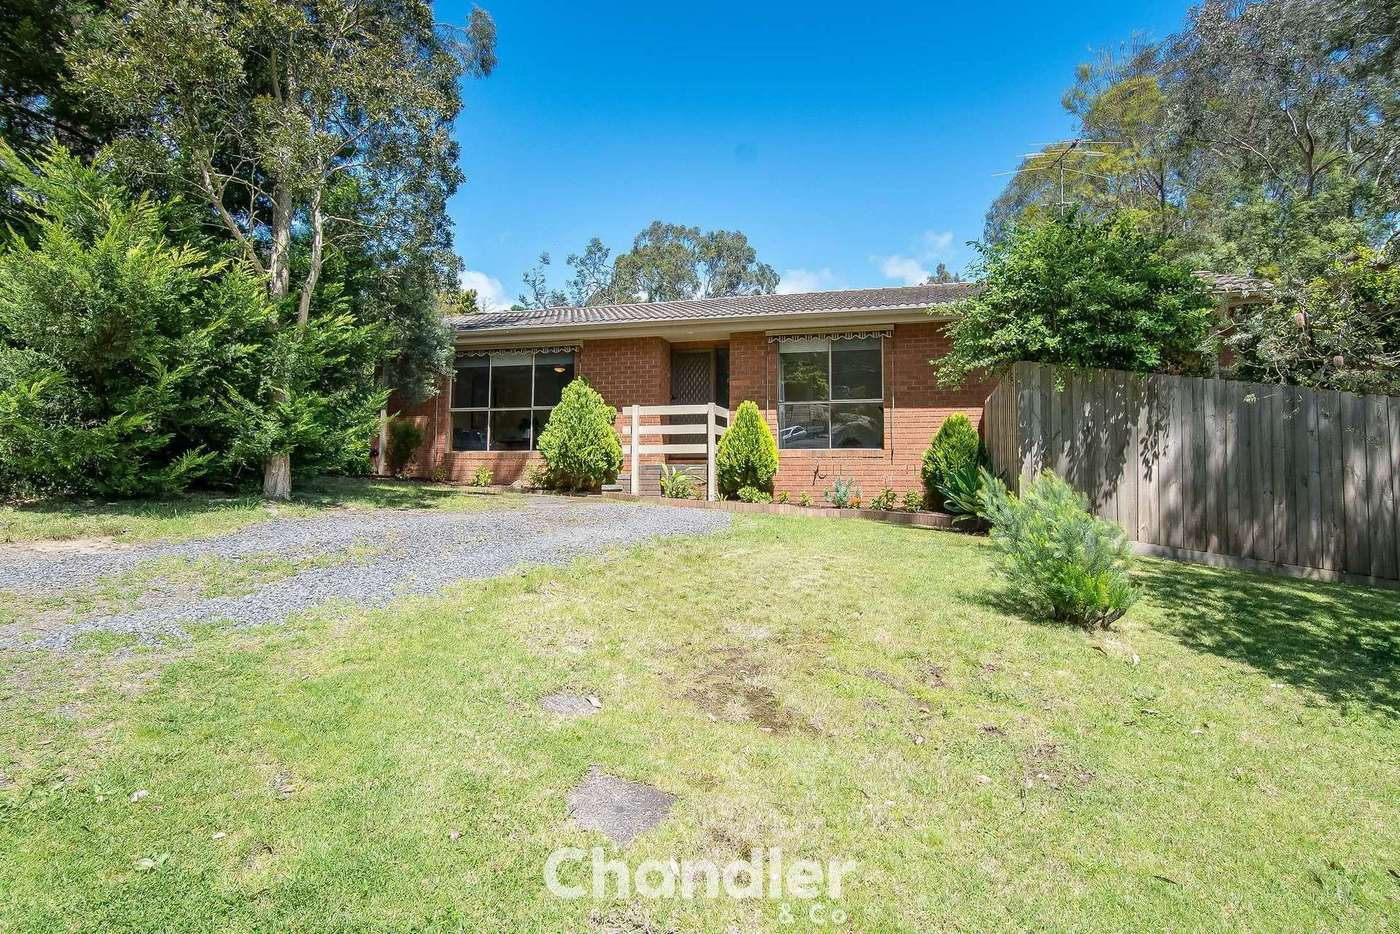 Main view of Homely house listing, 1/3 Kensley Street, Upper Ferntree Gully VIC 3156